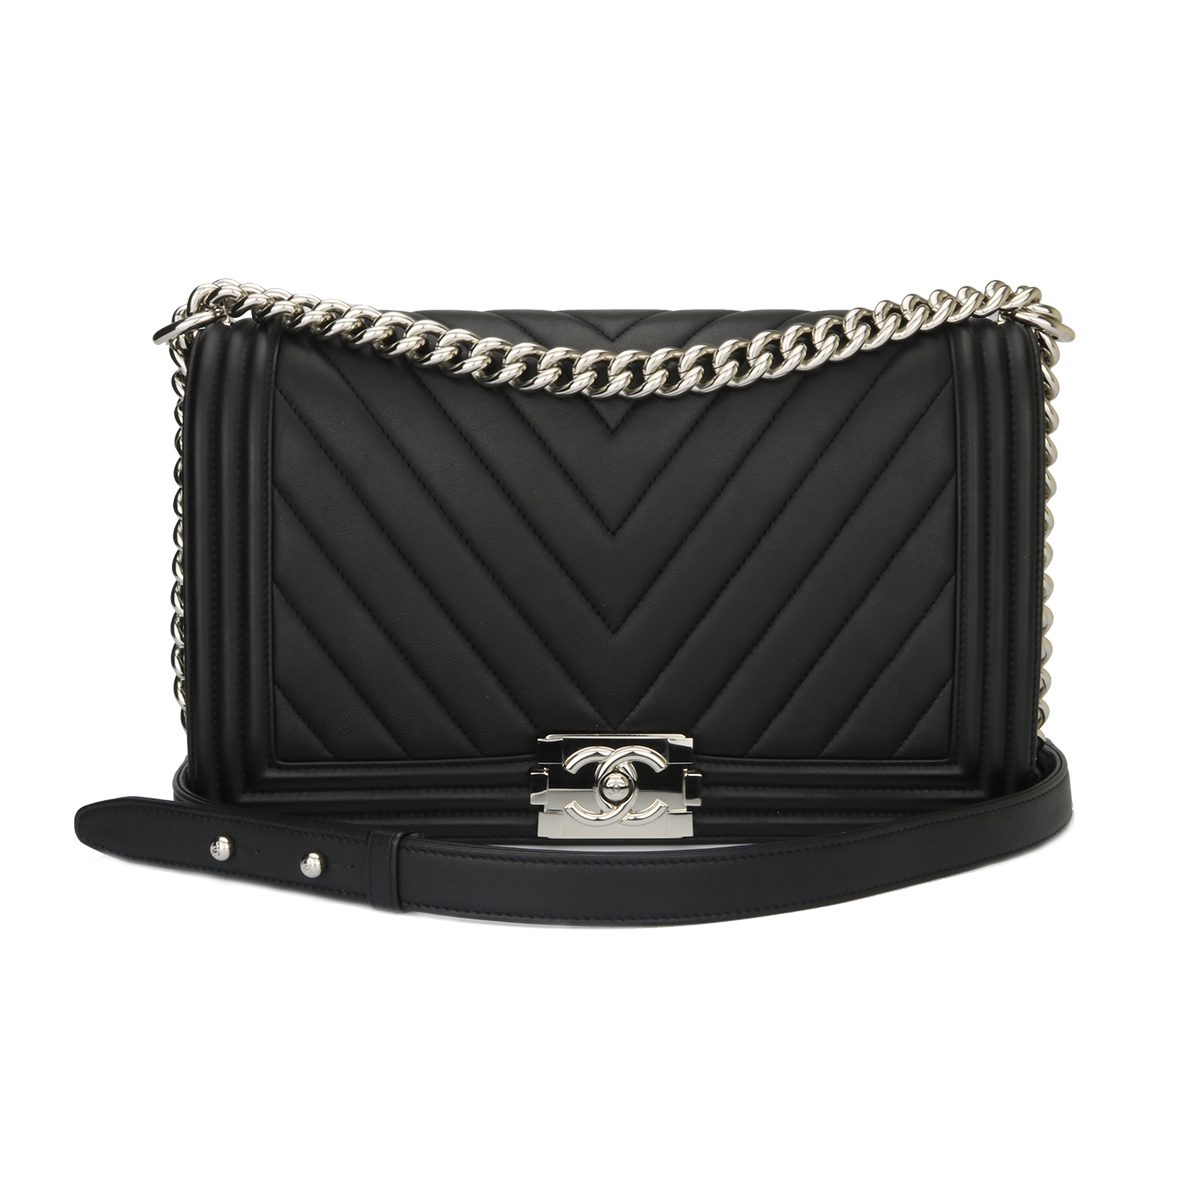 7392be61be1c Home Chanel CHANEL New Medium Boy Black Calfskin Chevron Shiny Silver  Hardware 2016.   